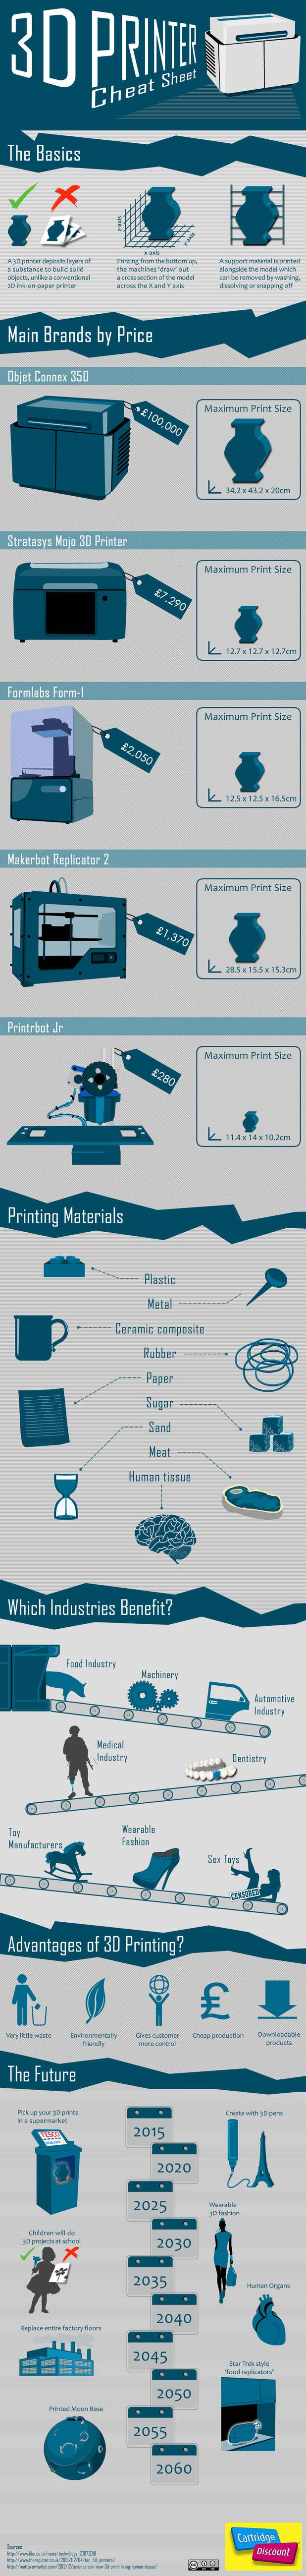 The people at Cartridge Discount made this nice up-to-date infographic that works as a cheat sheet for those new to 3D printing to explain simply what the technology is, how it works, and what possible applications it has on various industries.